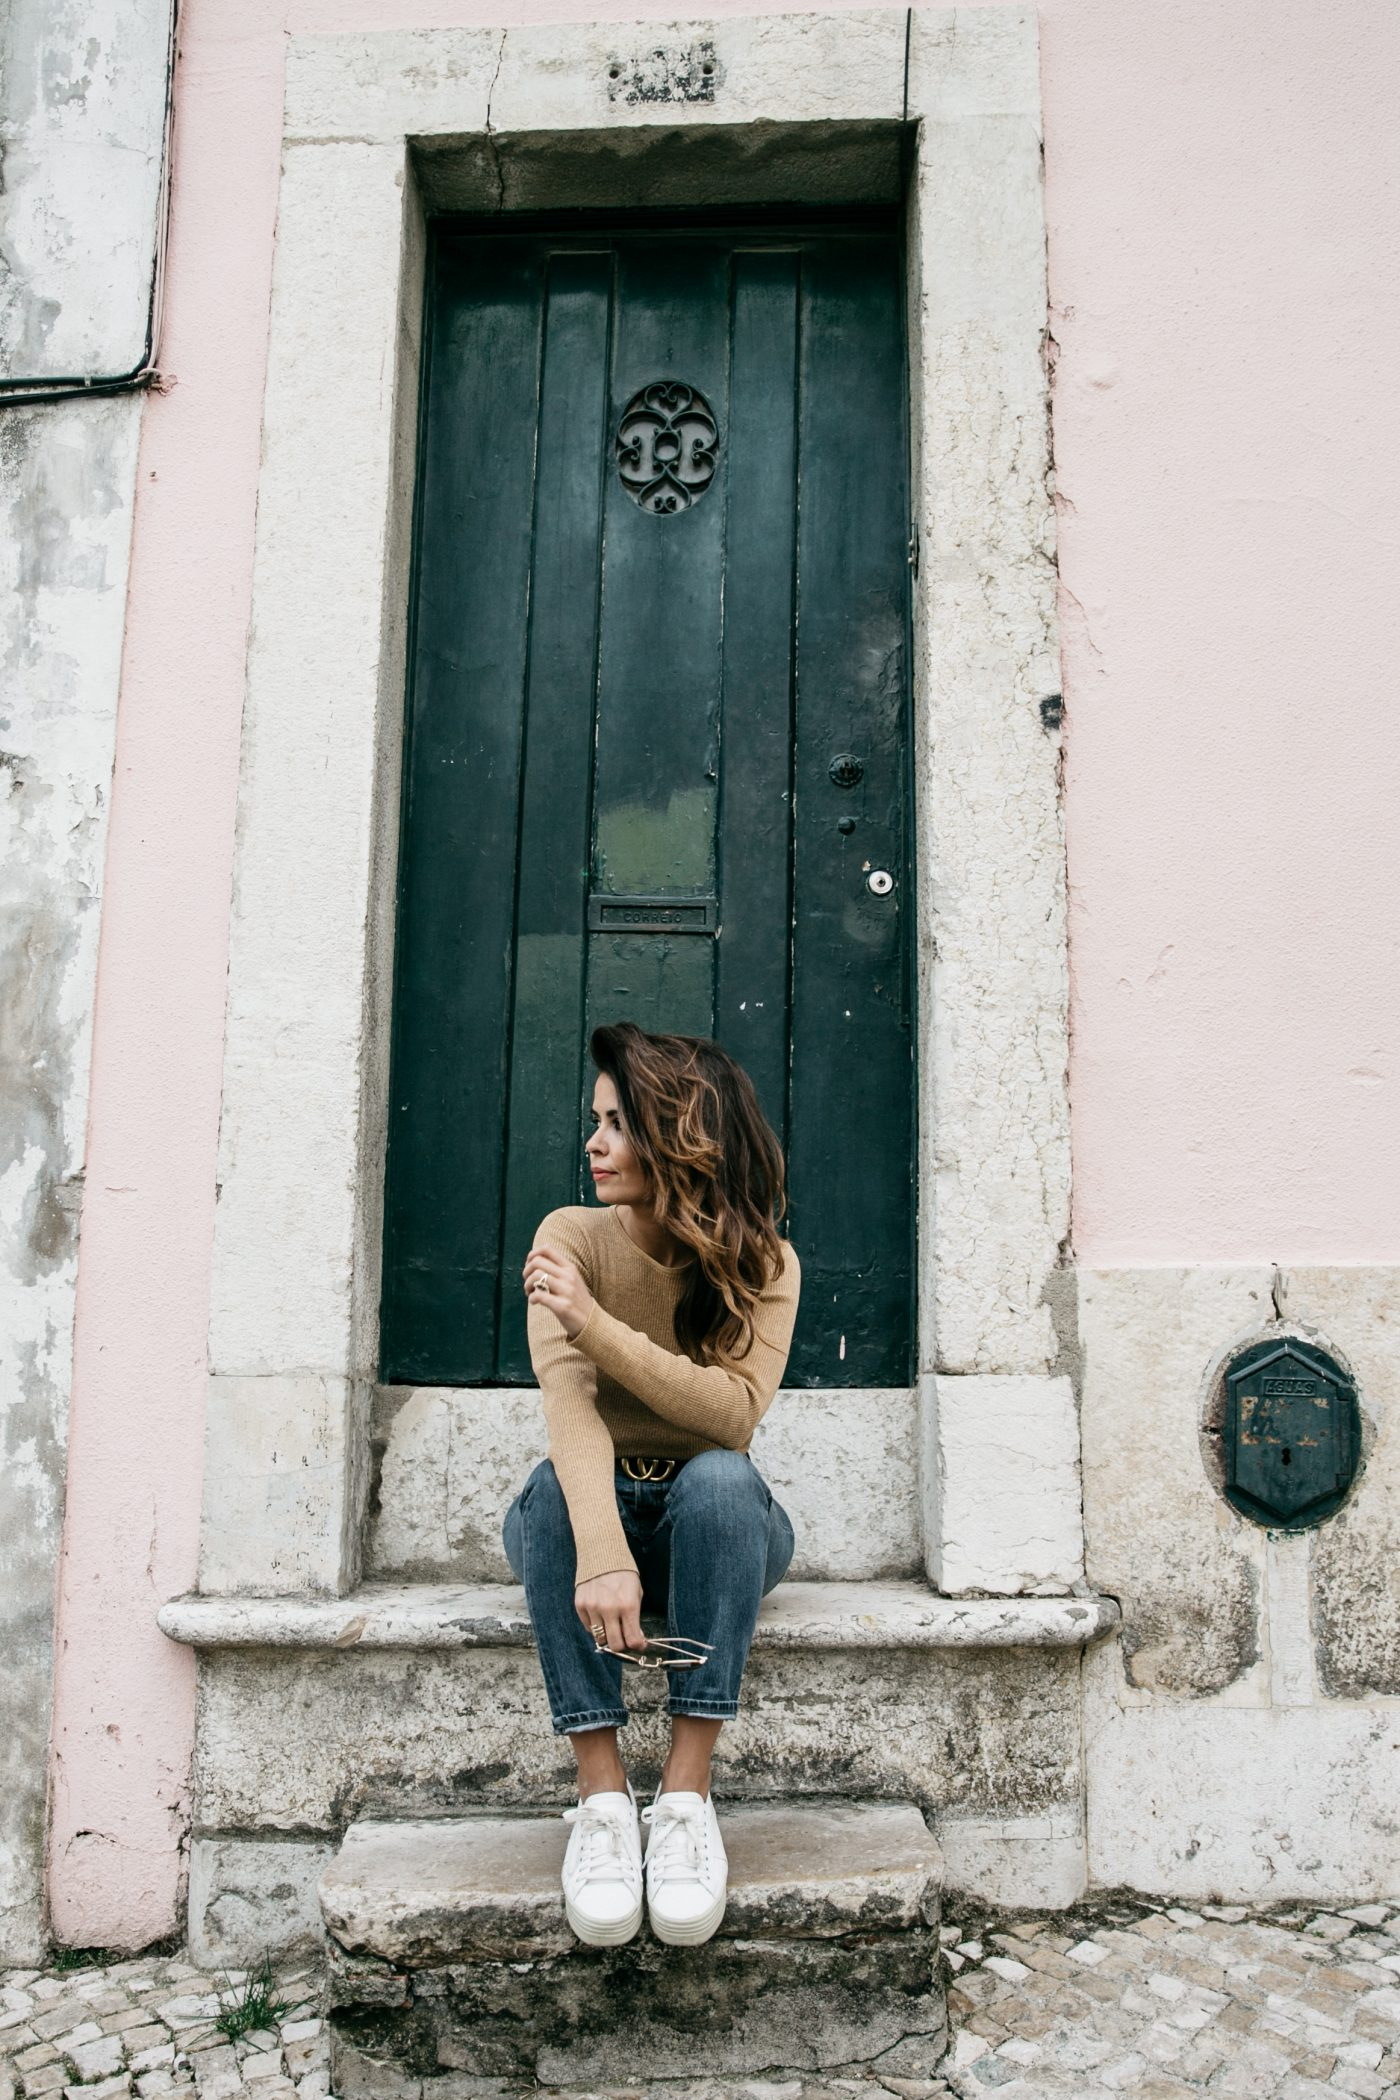 Metallic_Sweater-Cameo_The_Label-Melie-Lisboa-Denim-Topshop-Gucci_Belt-Saint_Laurent_Sneakers-Outfit-Street_Style-57